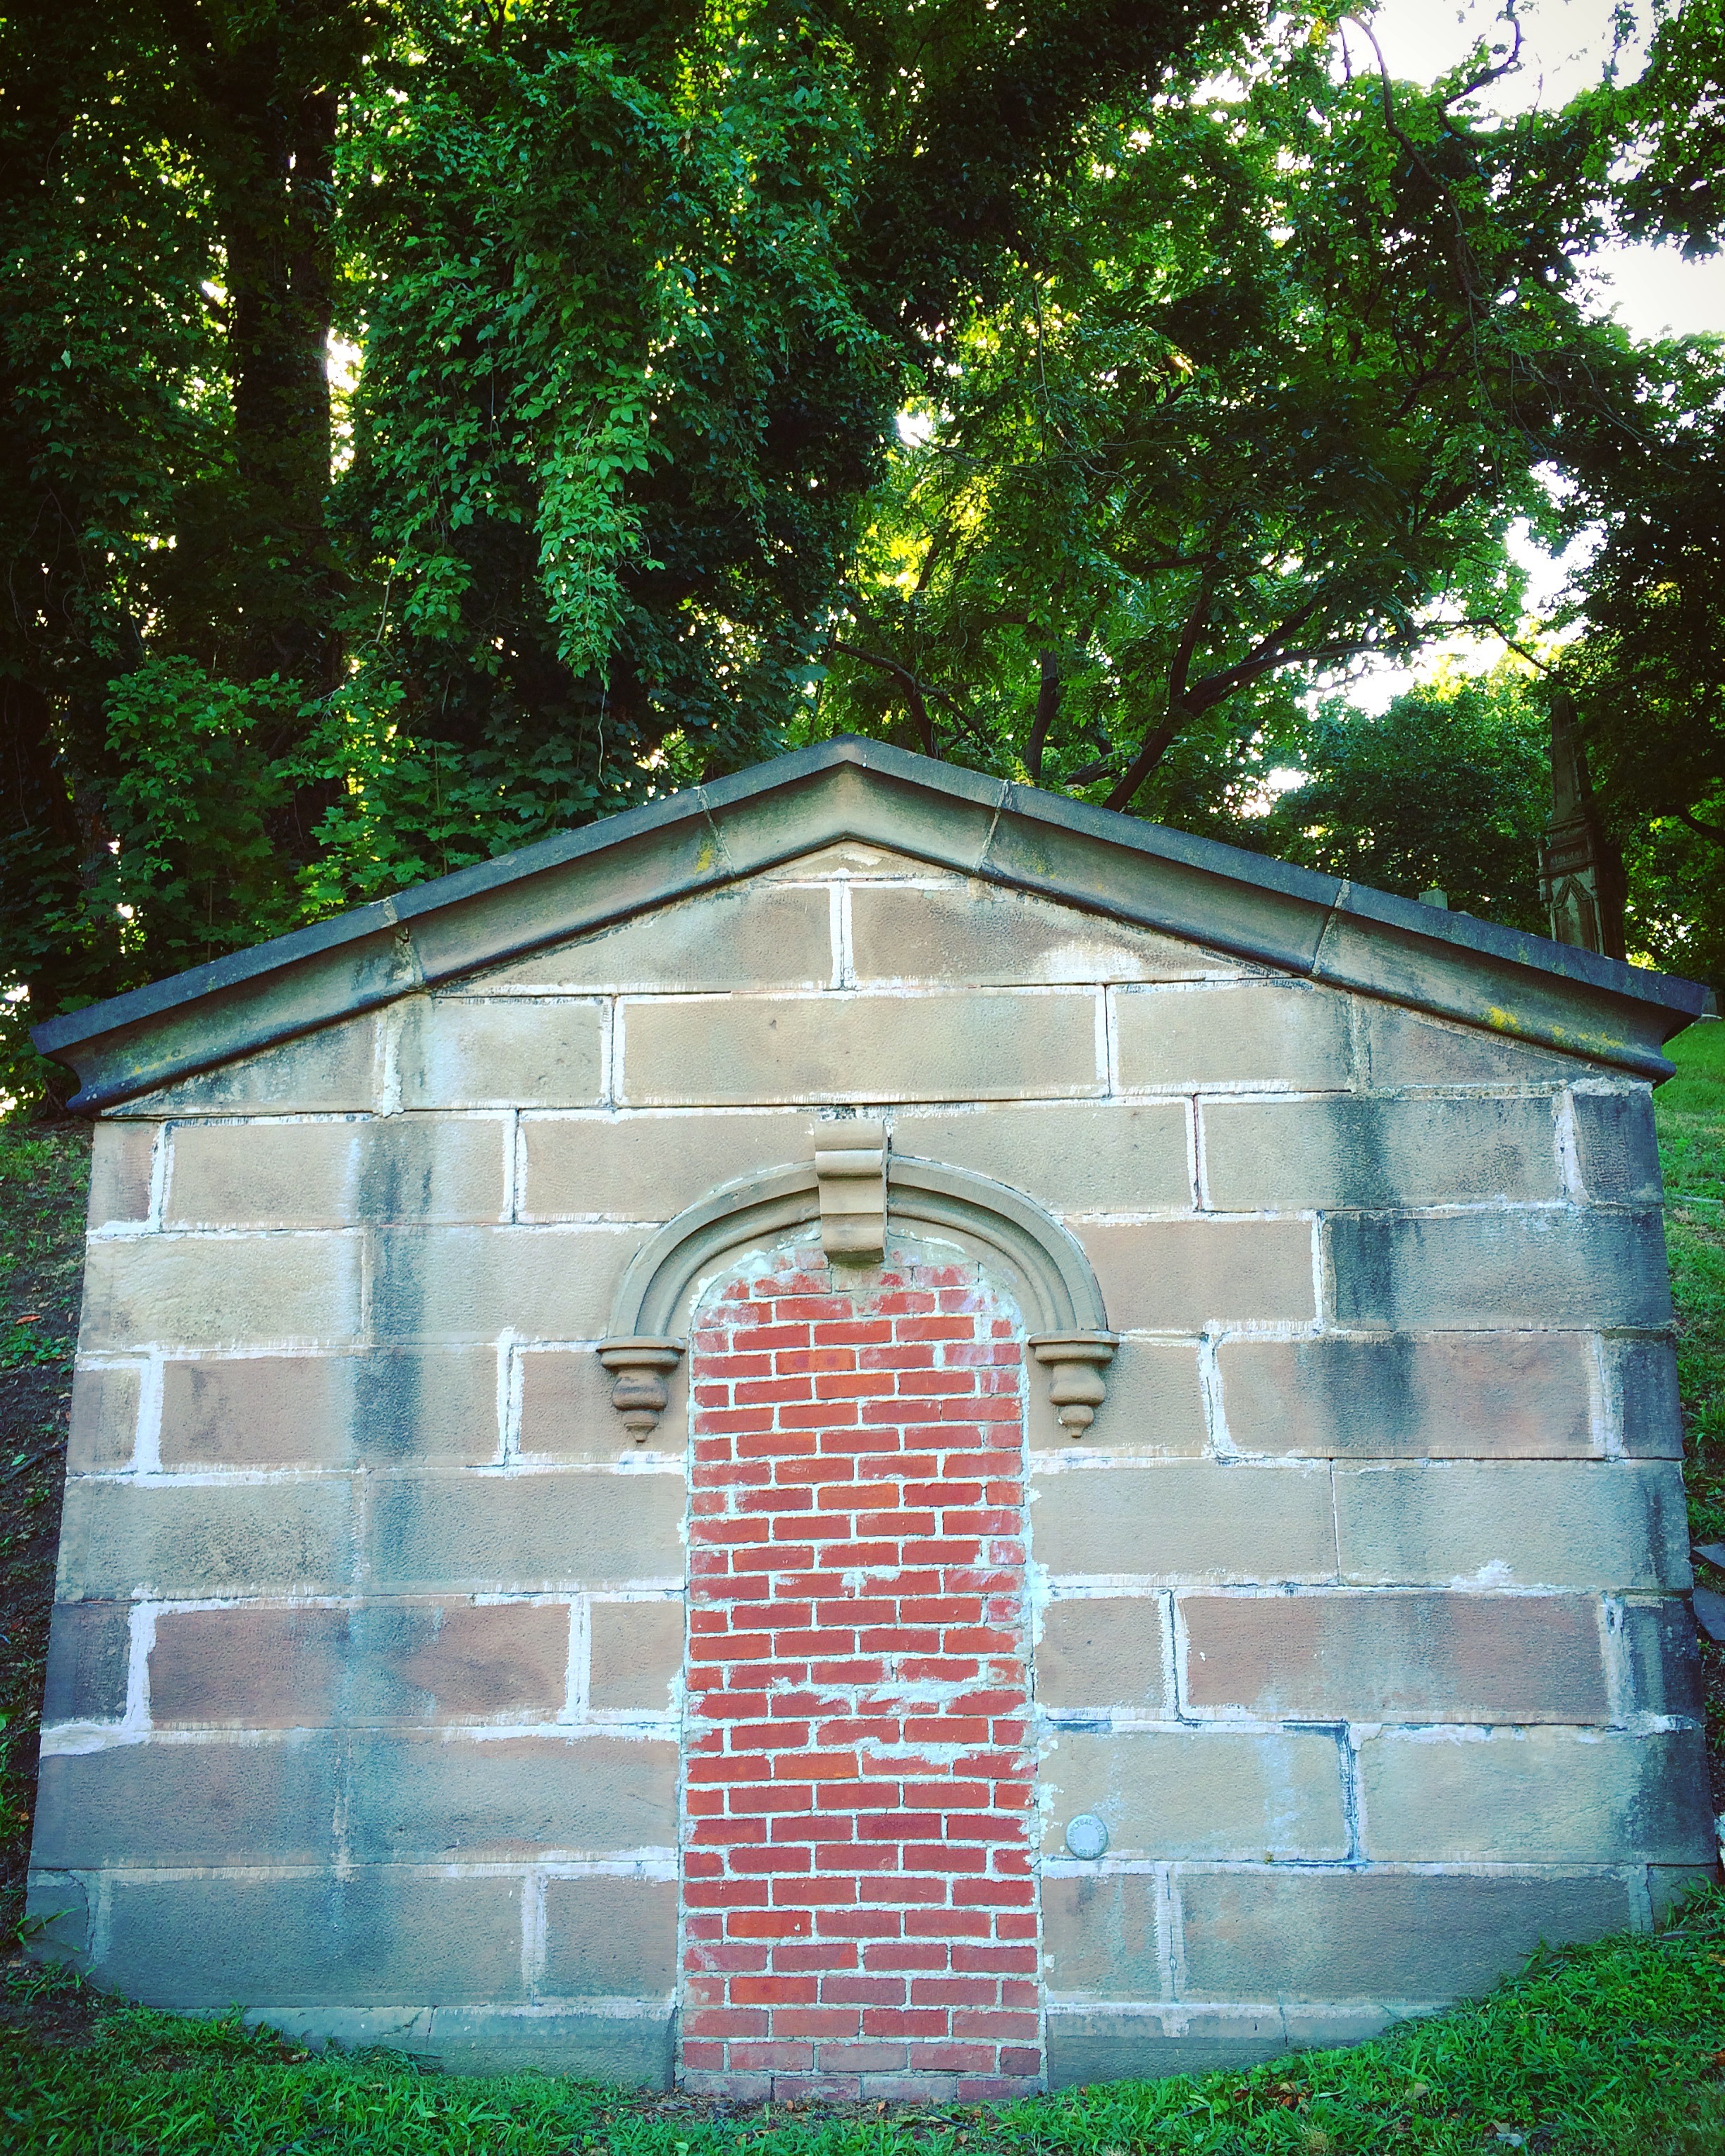 in the Green-wood Cemetery, a stone mausoleum with a peaked roof stands before a wall of green trees and overgrowth. its door, beneath a carved arch, is bricked over like some creepy Beetlejuice business